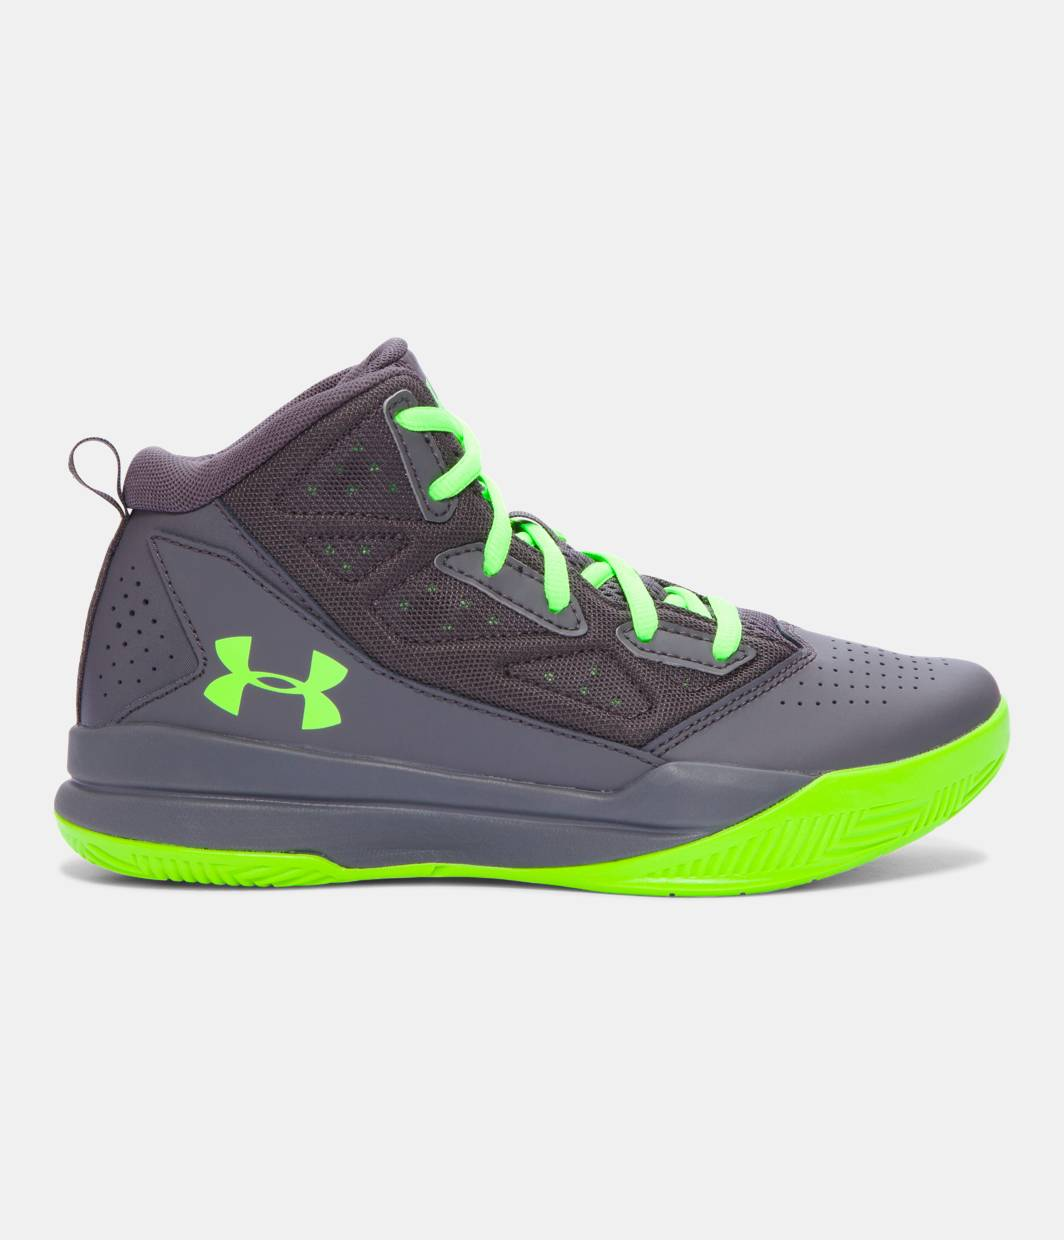 Under Armour Boys Jet Mid Basketball Shoes